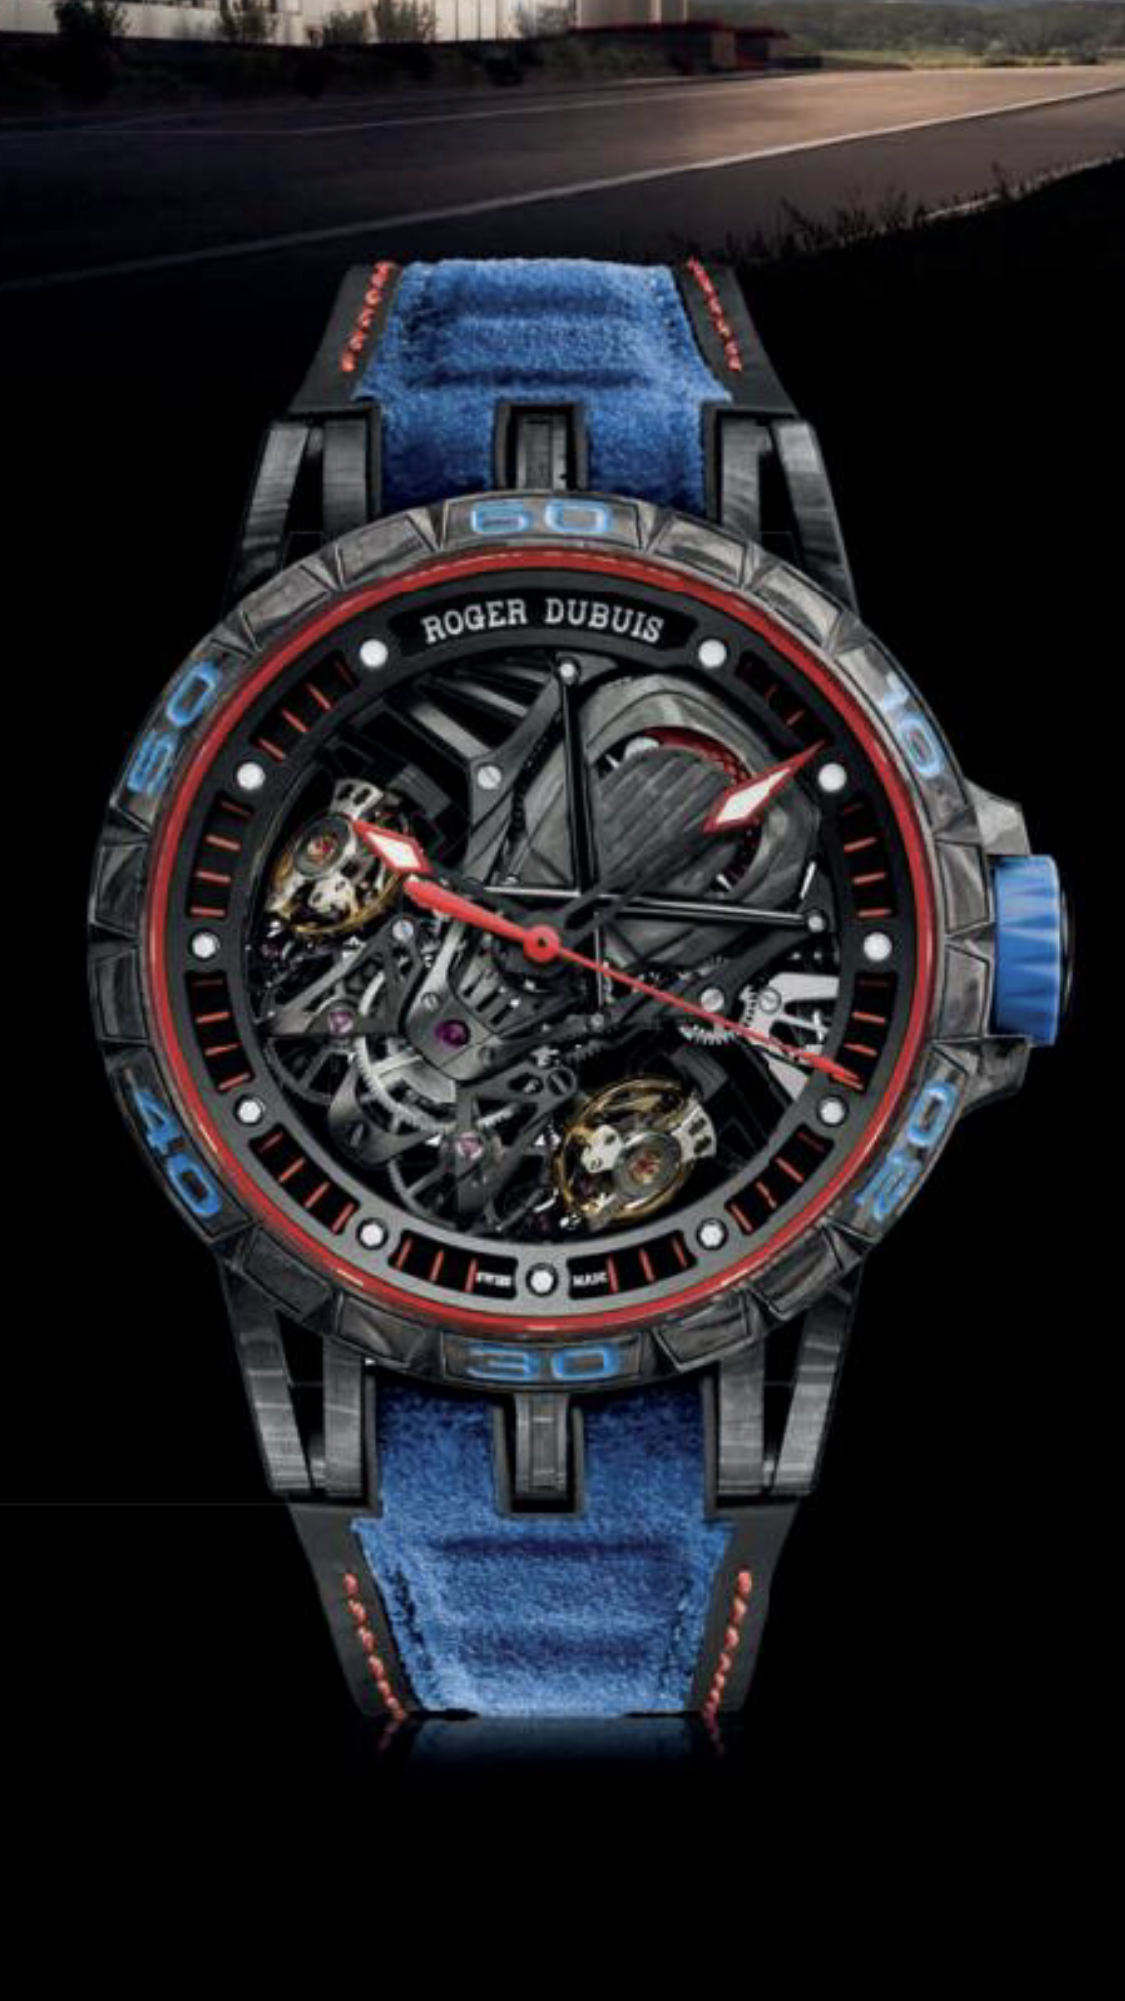 Pin By Brenton E Holt On Clothing Watches Watches For Men Mens Fashion Watches Skeleton Watches